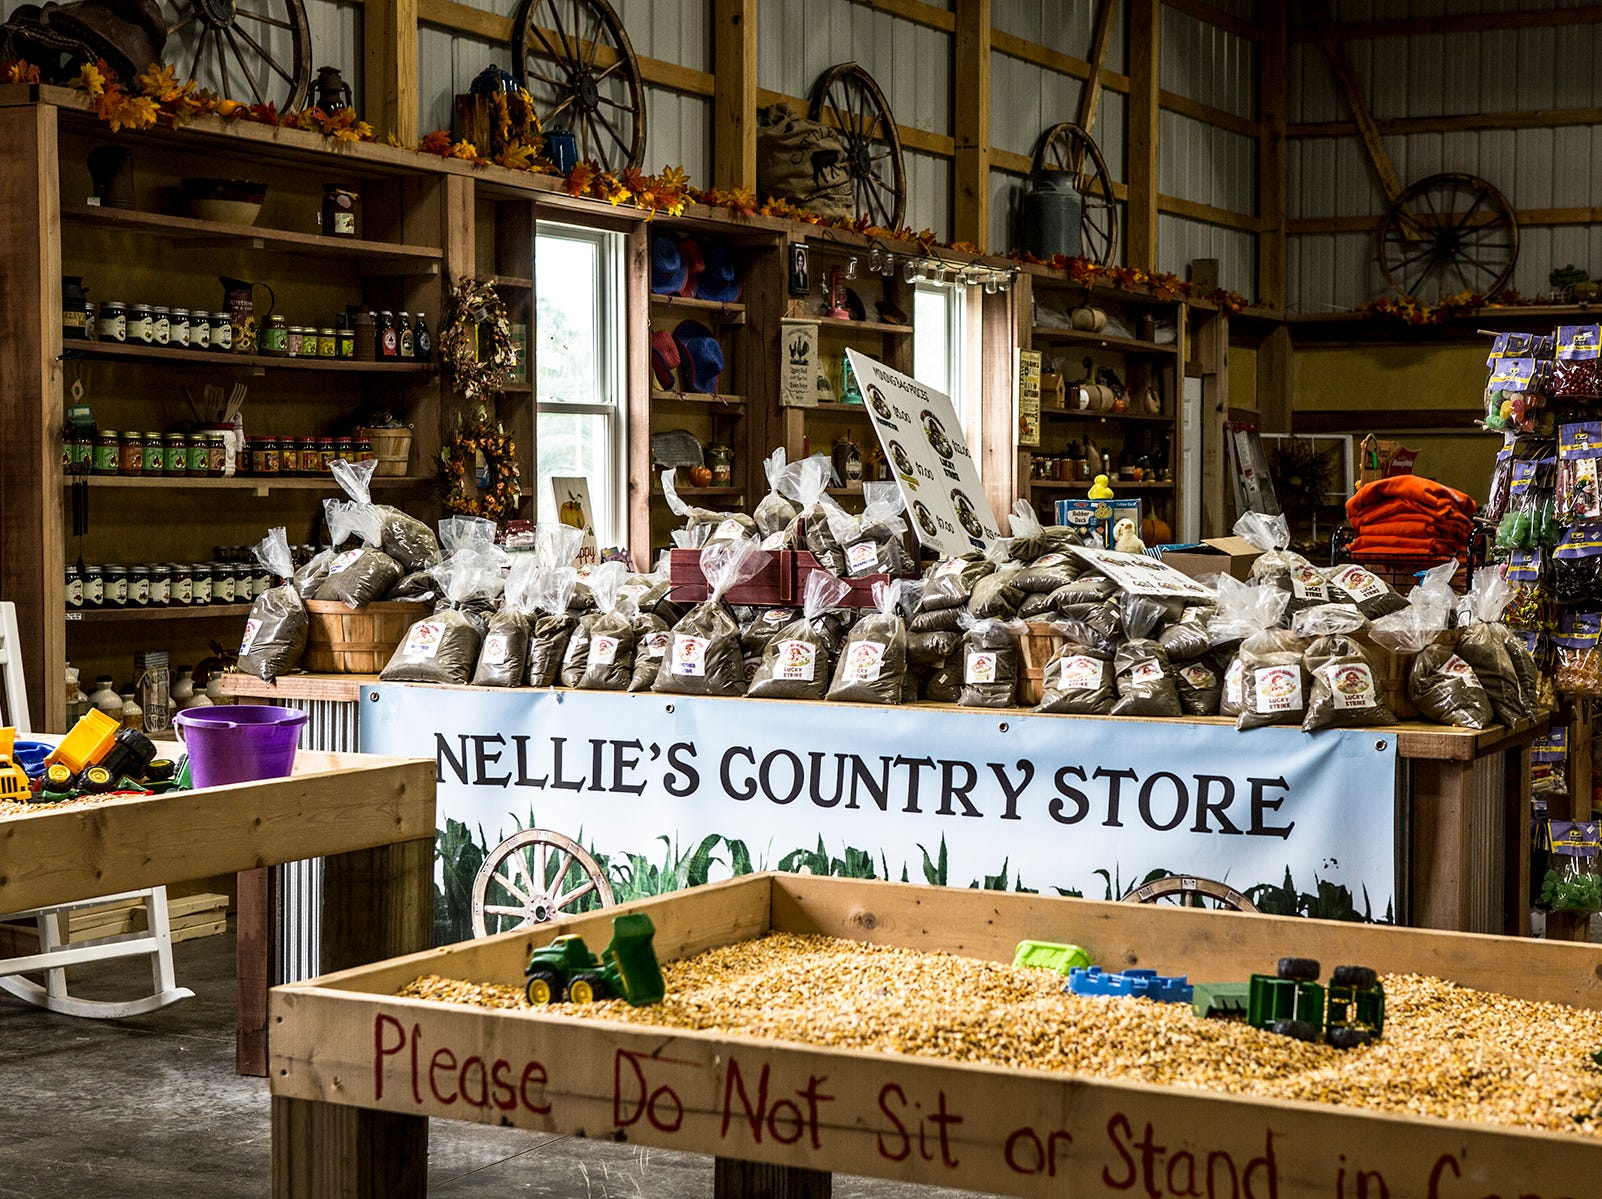 The country store where a variety of items can be purchased.